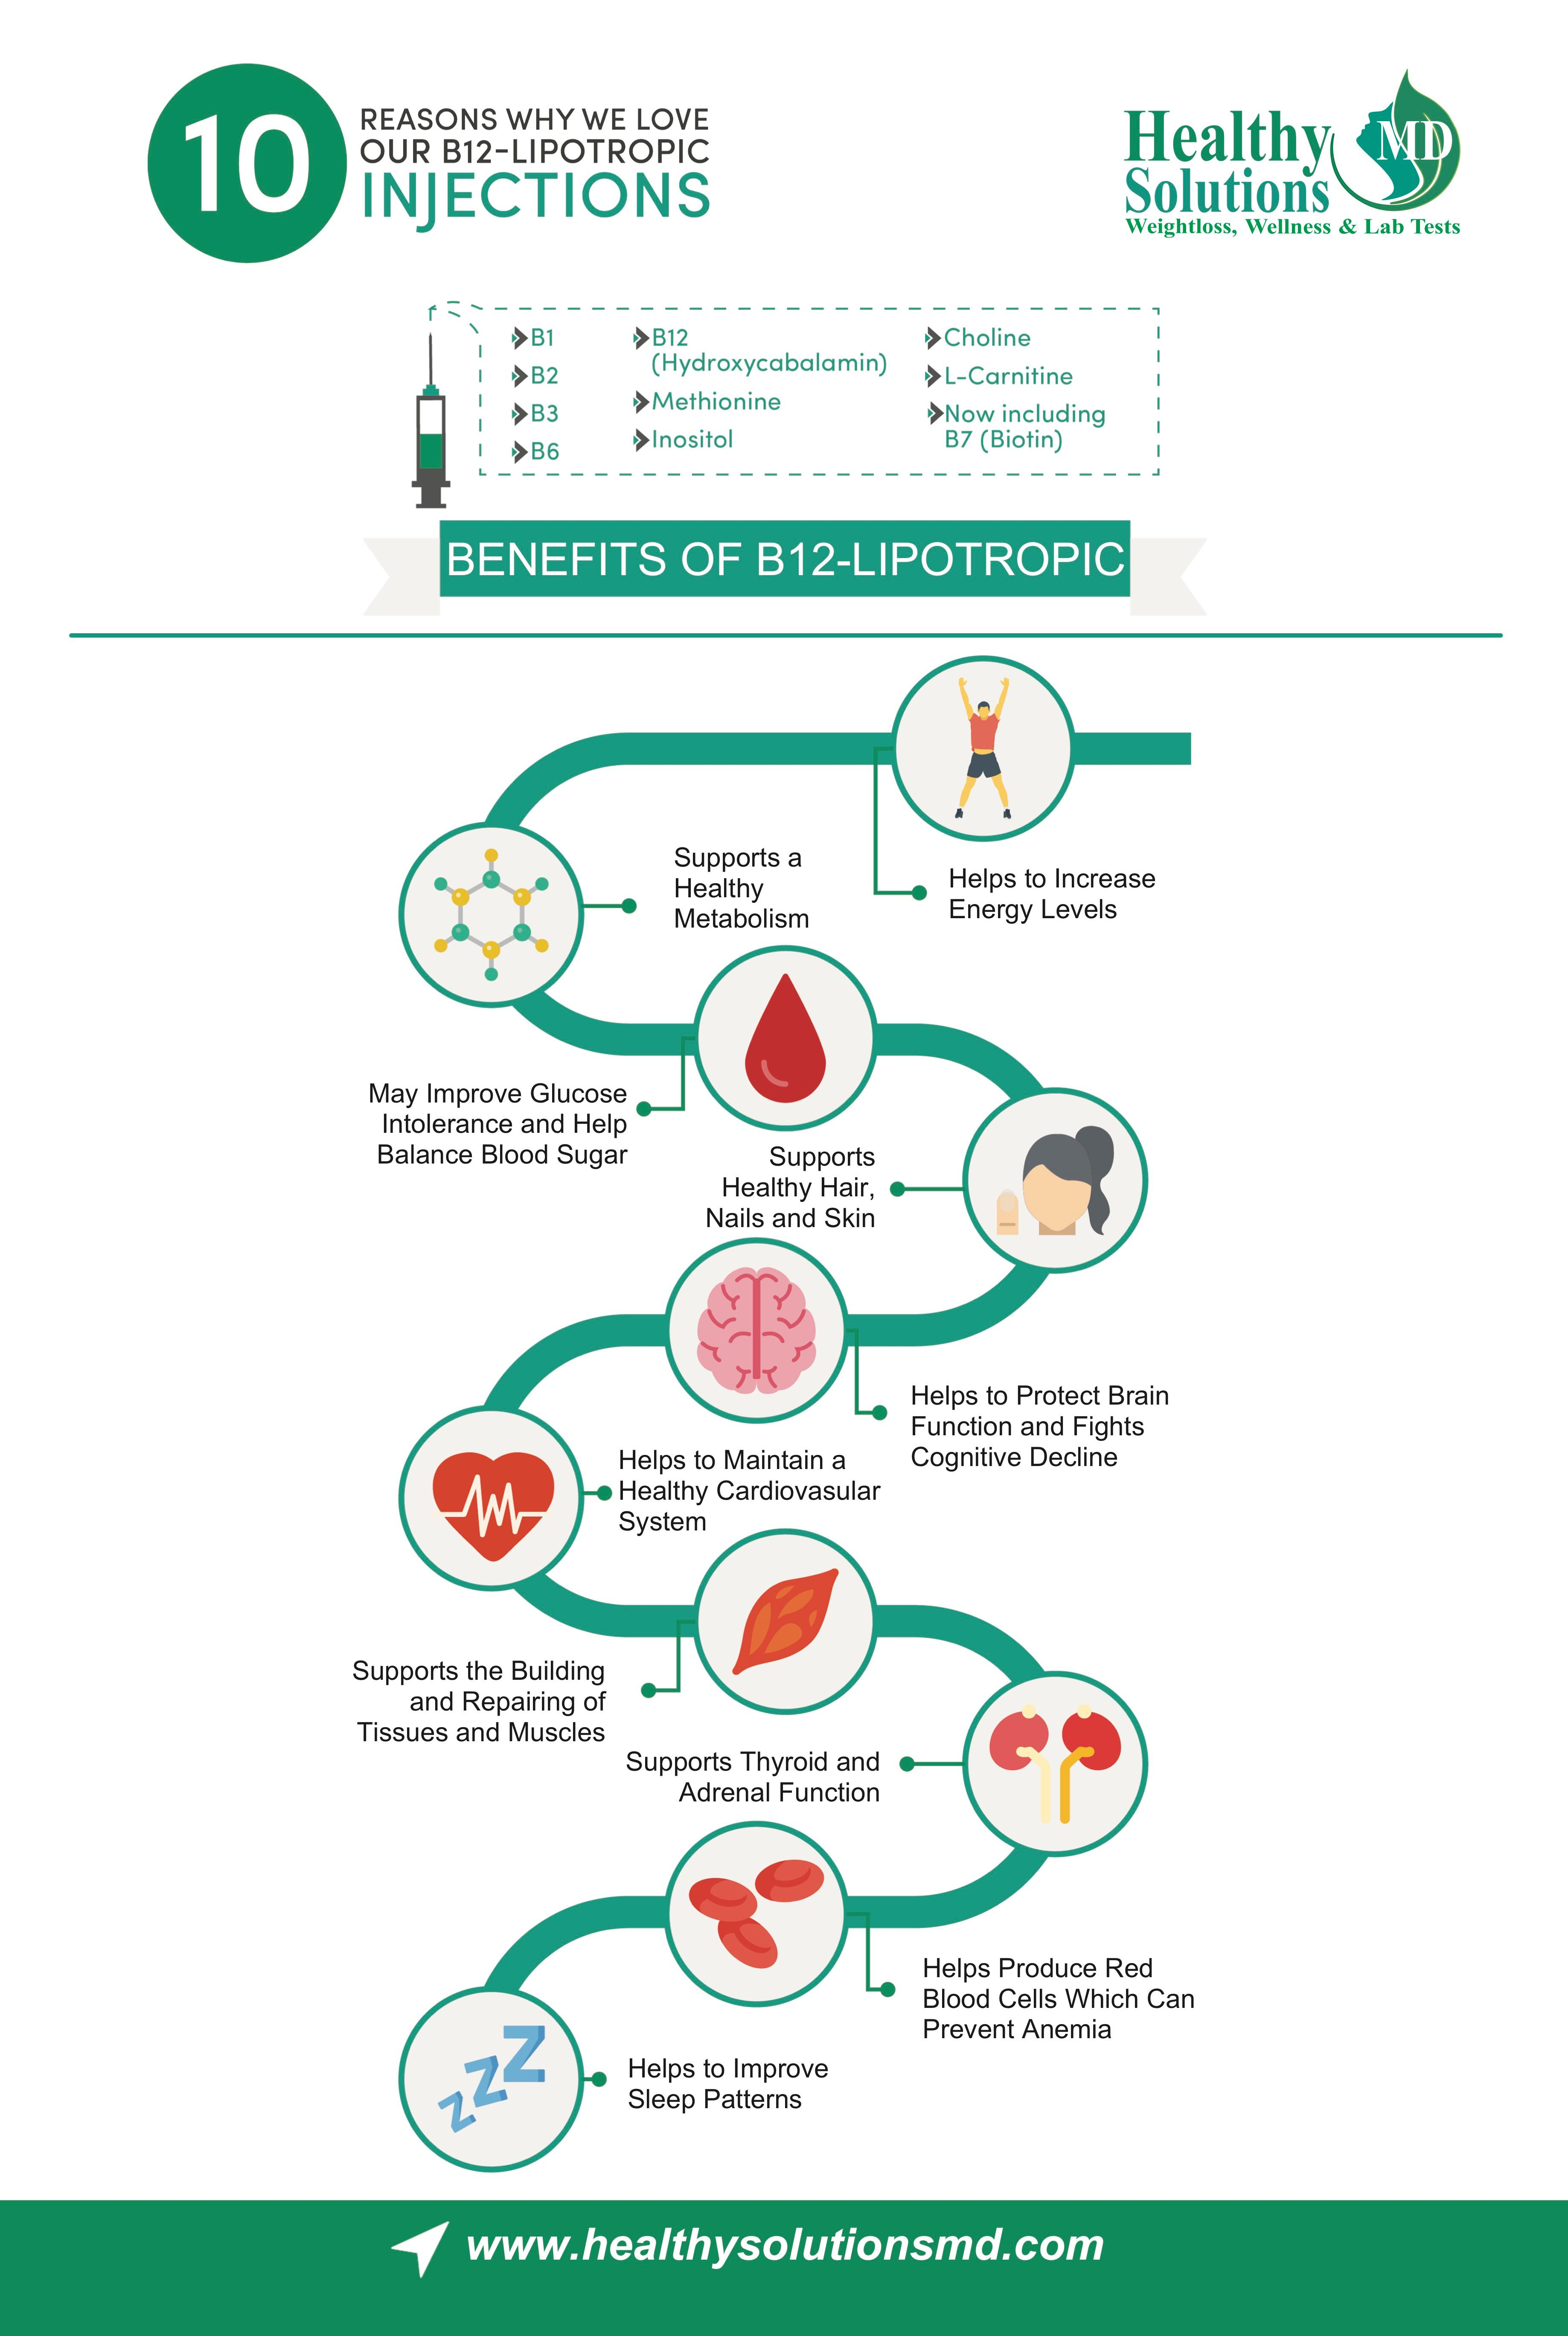 Healthy Solutions MD image 1